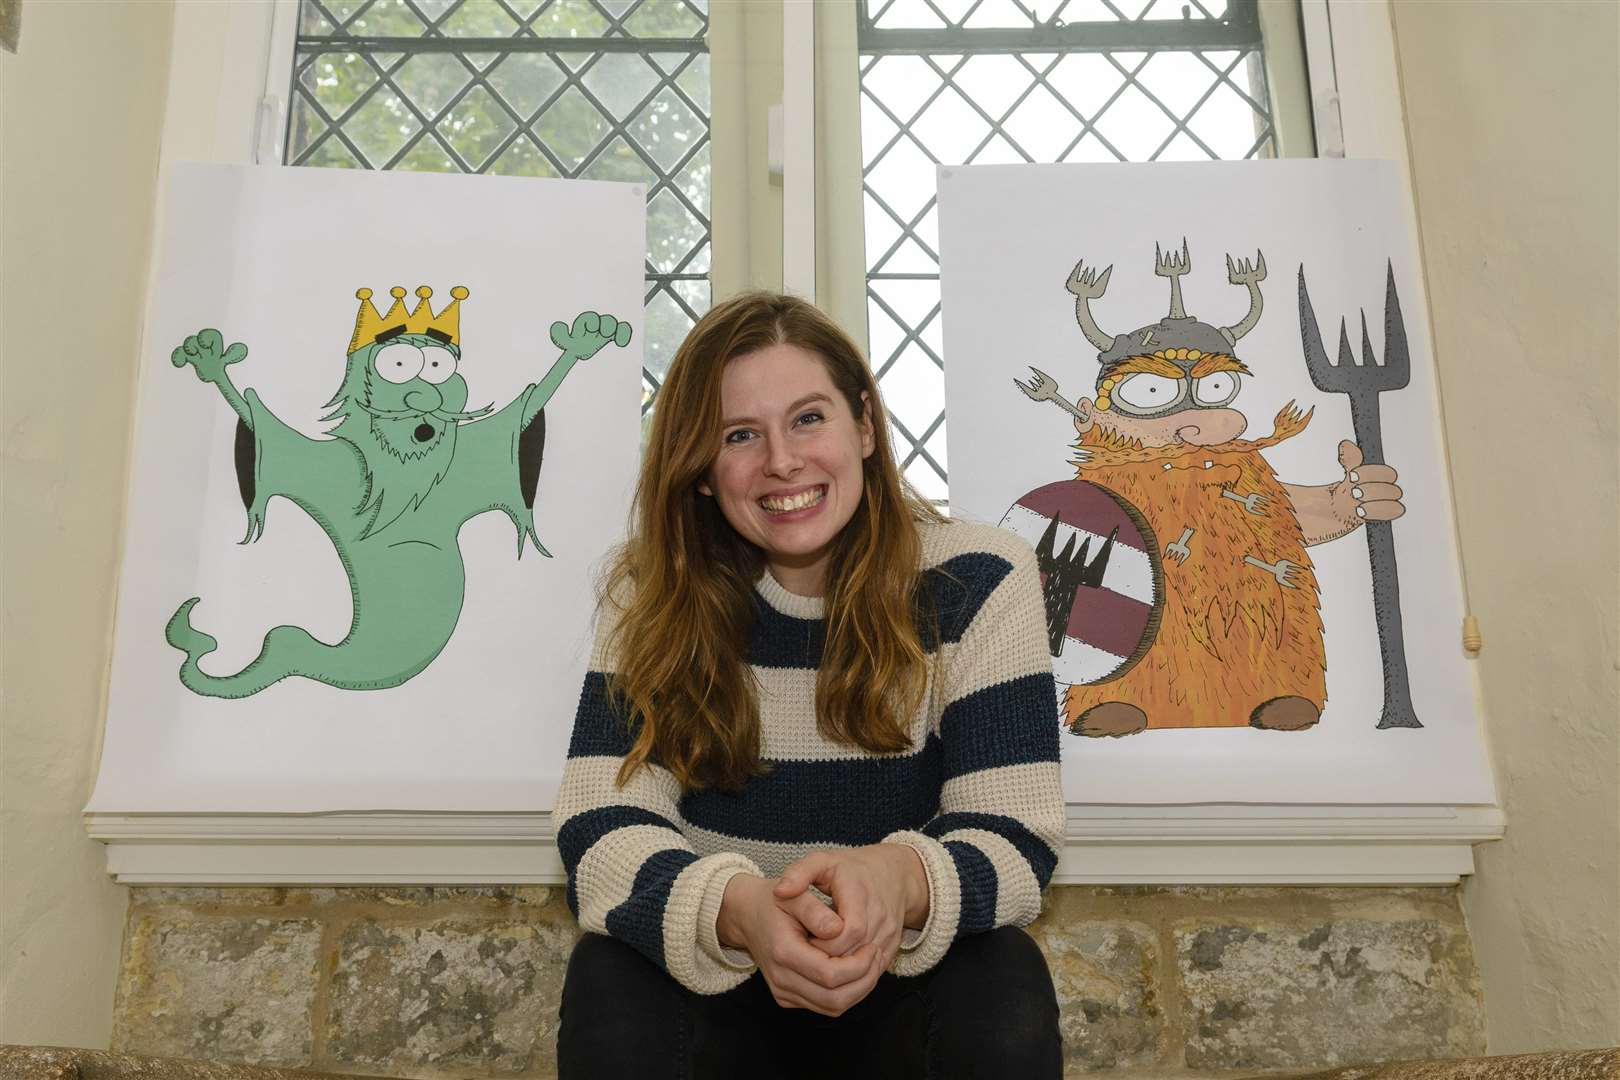 Bury St Edmunds, Suffolk, UK, 06 November 2018..Hatty Ashton of Bury St Edmunds with her characters Ghosty Ed and Forkbeard from her new book called Forkbeard and the Ghost King which is set at Moyse's hall, illustration by Joshua Rosewarn...Picture: Mark Bullimore Photography. (5258584)